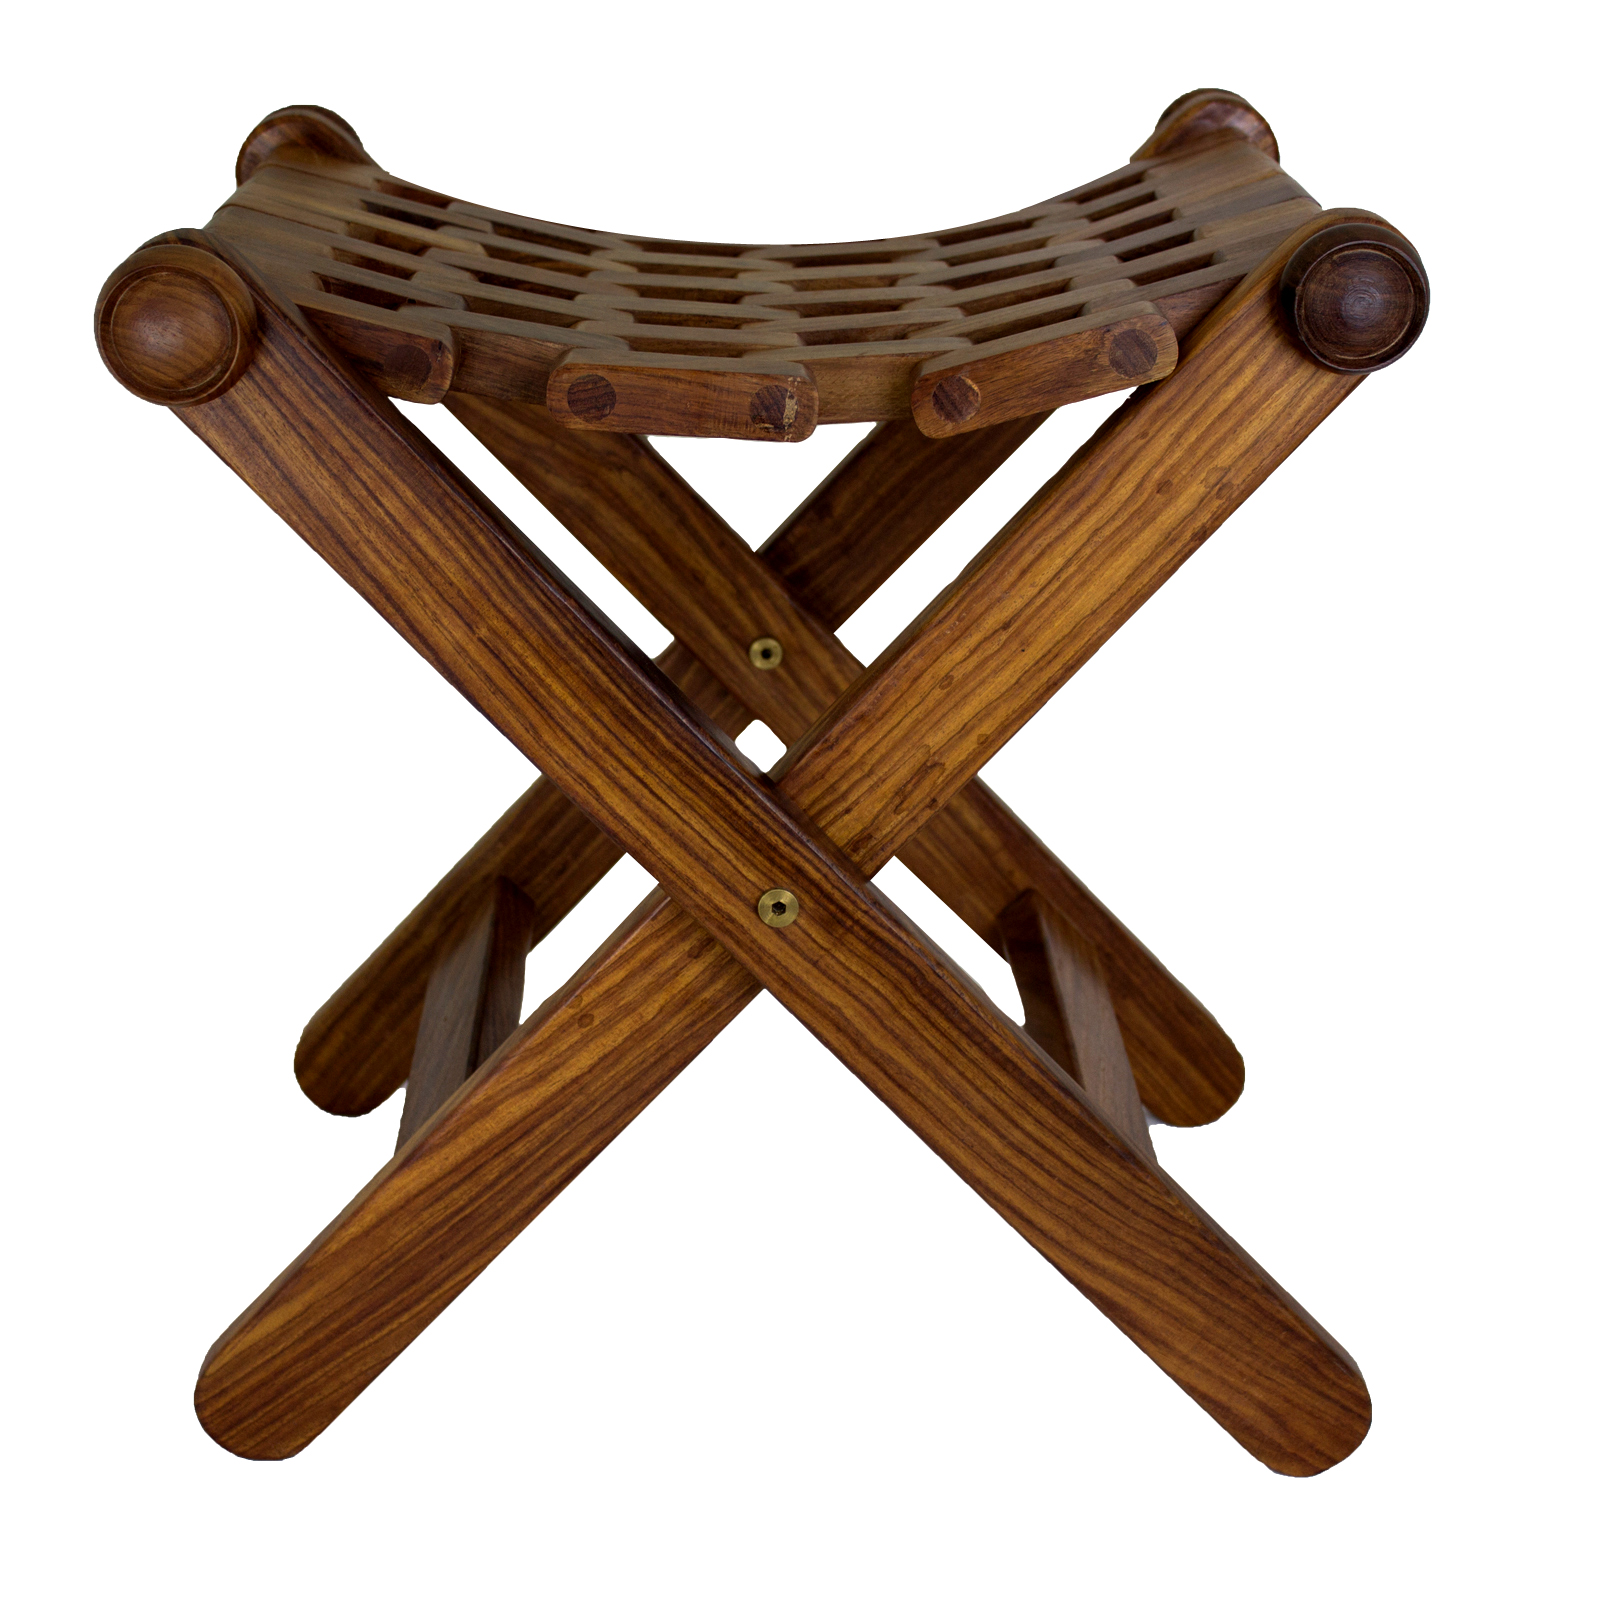 Superb img of Folding Foot Stool Rest Urban Home Hand Carved Wooden Vintage Indian  with #3E1E0D color and 1600x1600 pixels